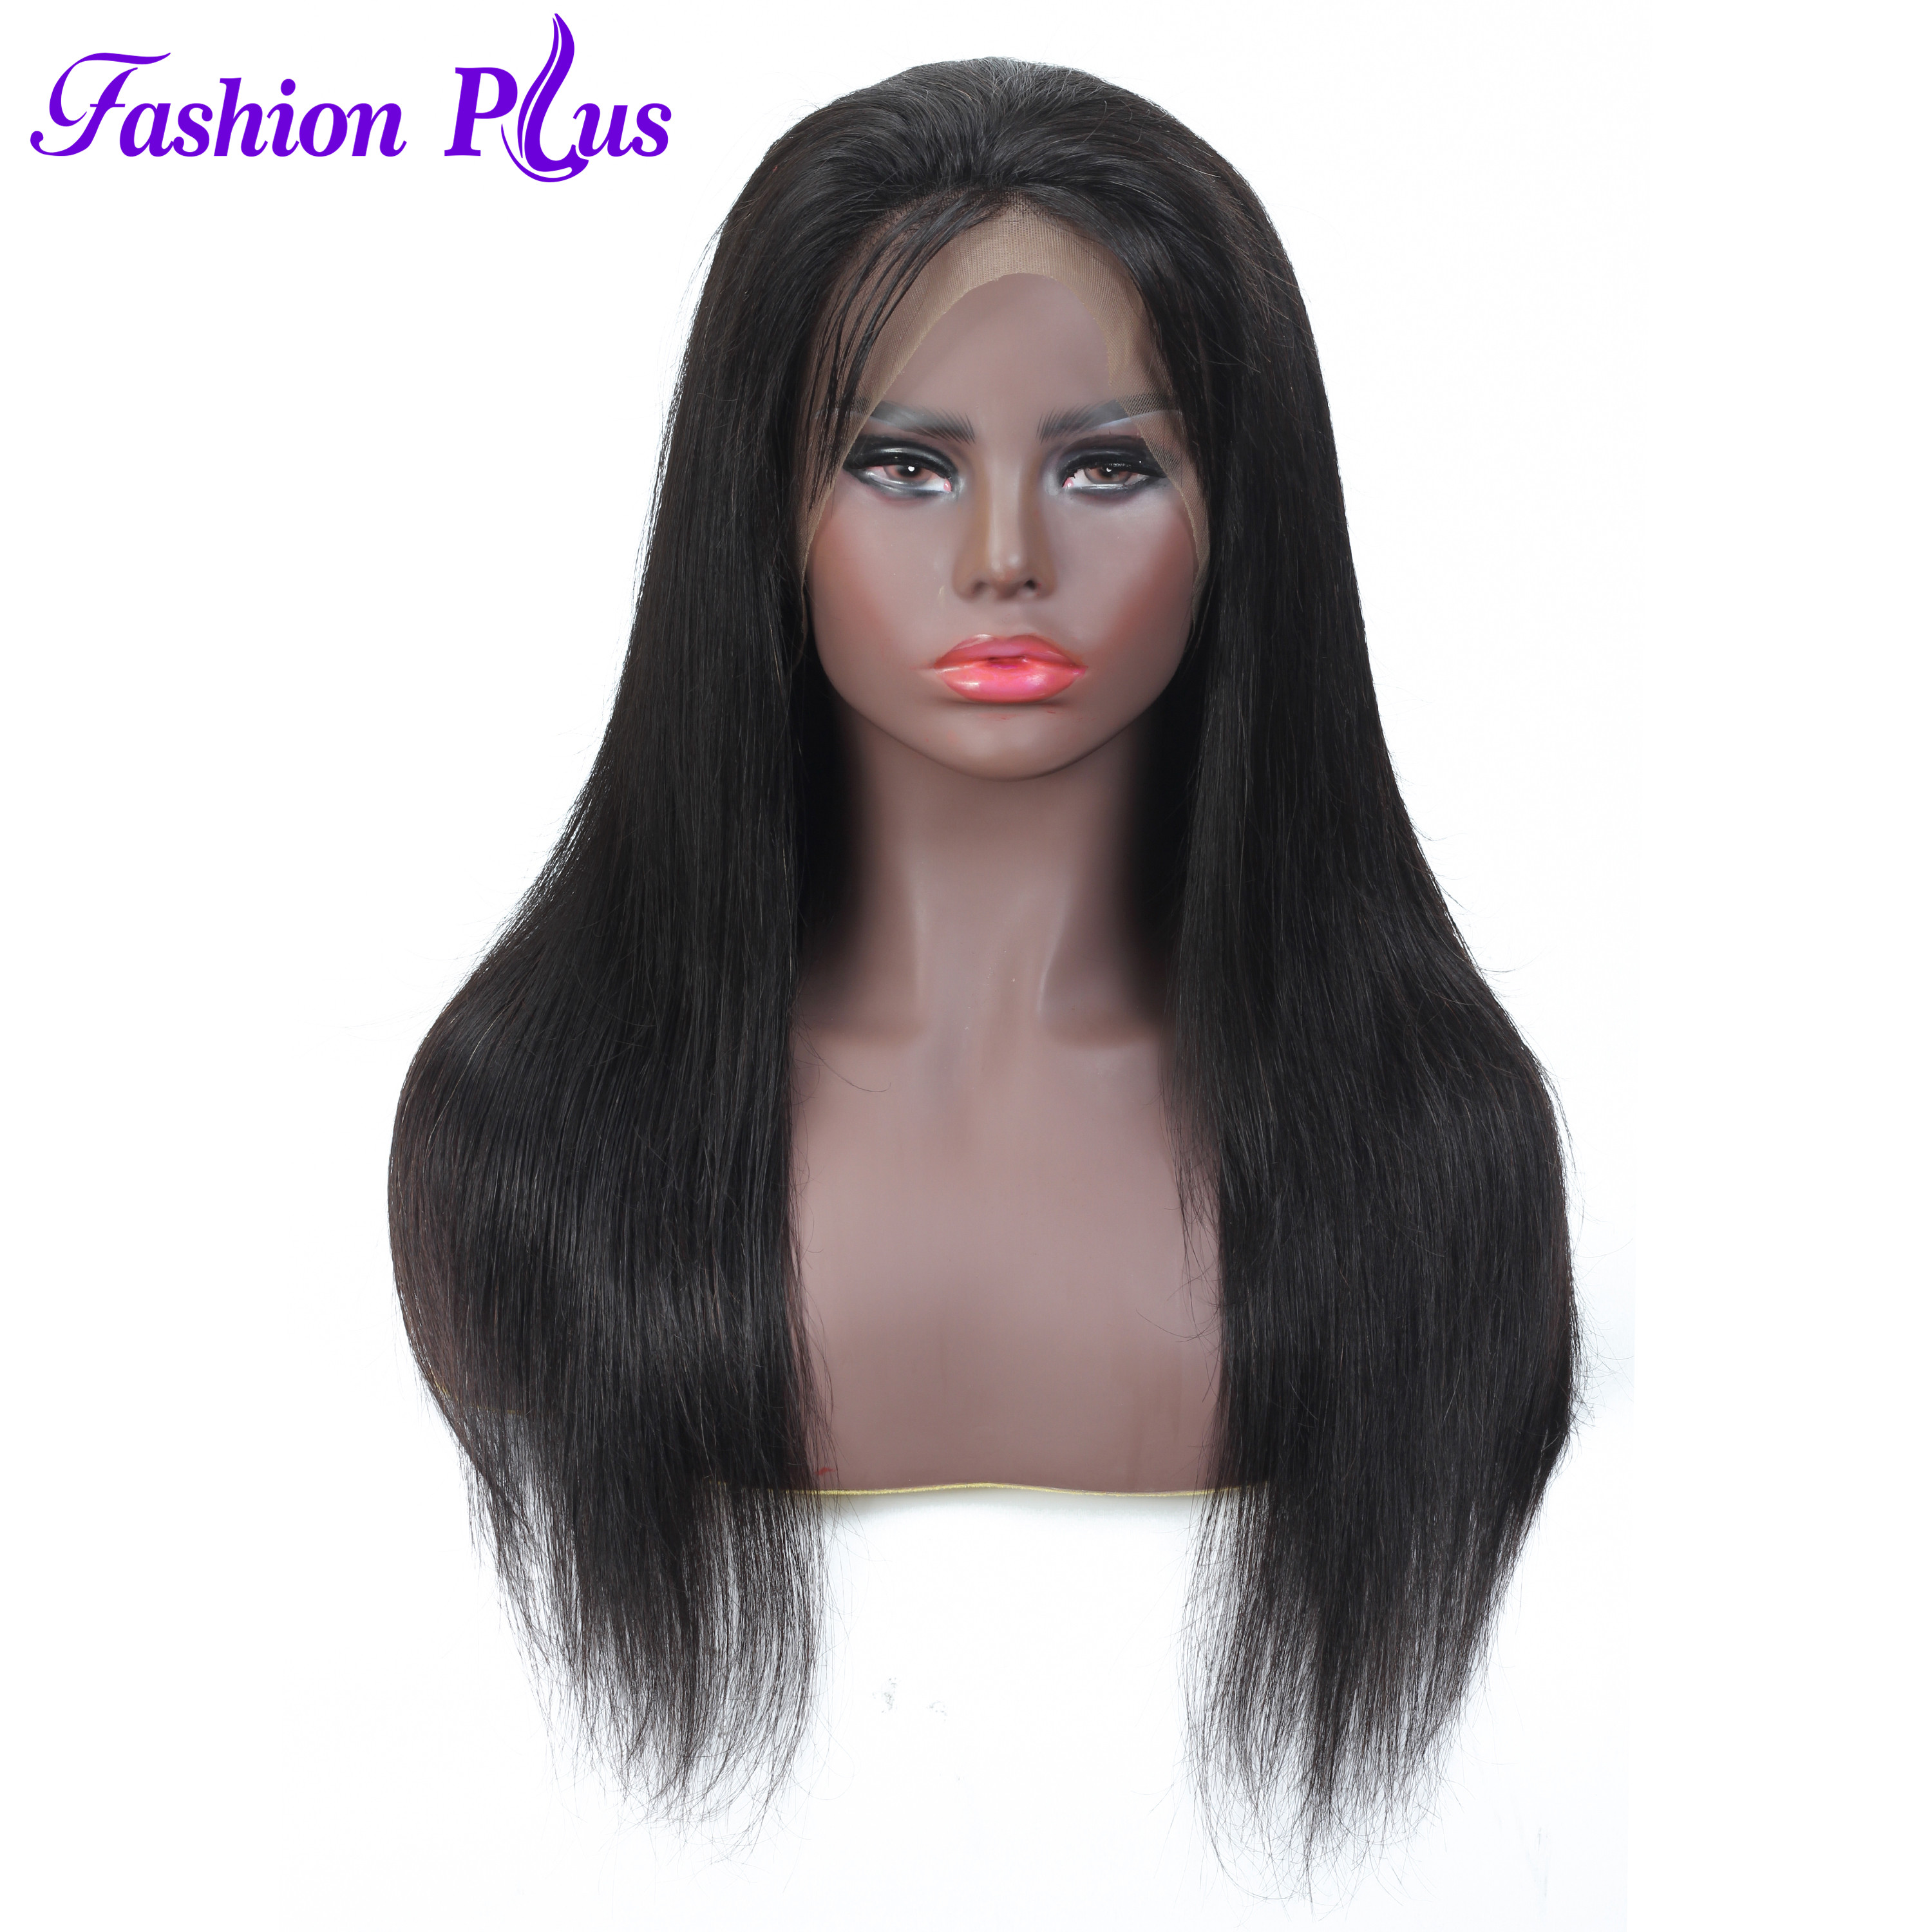 360 Lace Frontal Wigs 100% Human Hair Pre Plucked With Baby Hair Brazilian Straight Remy Hair Wigs For Women 150% Density